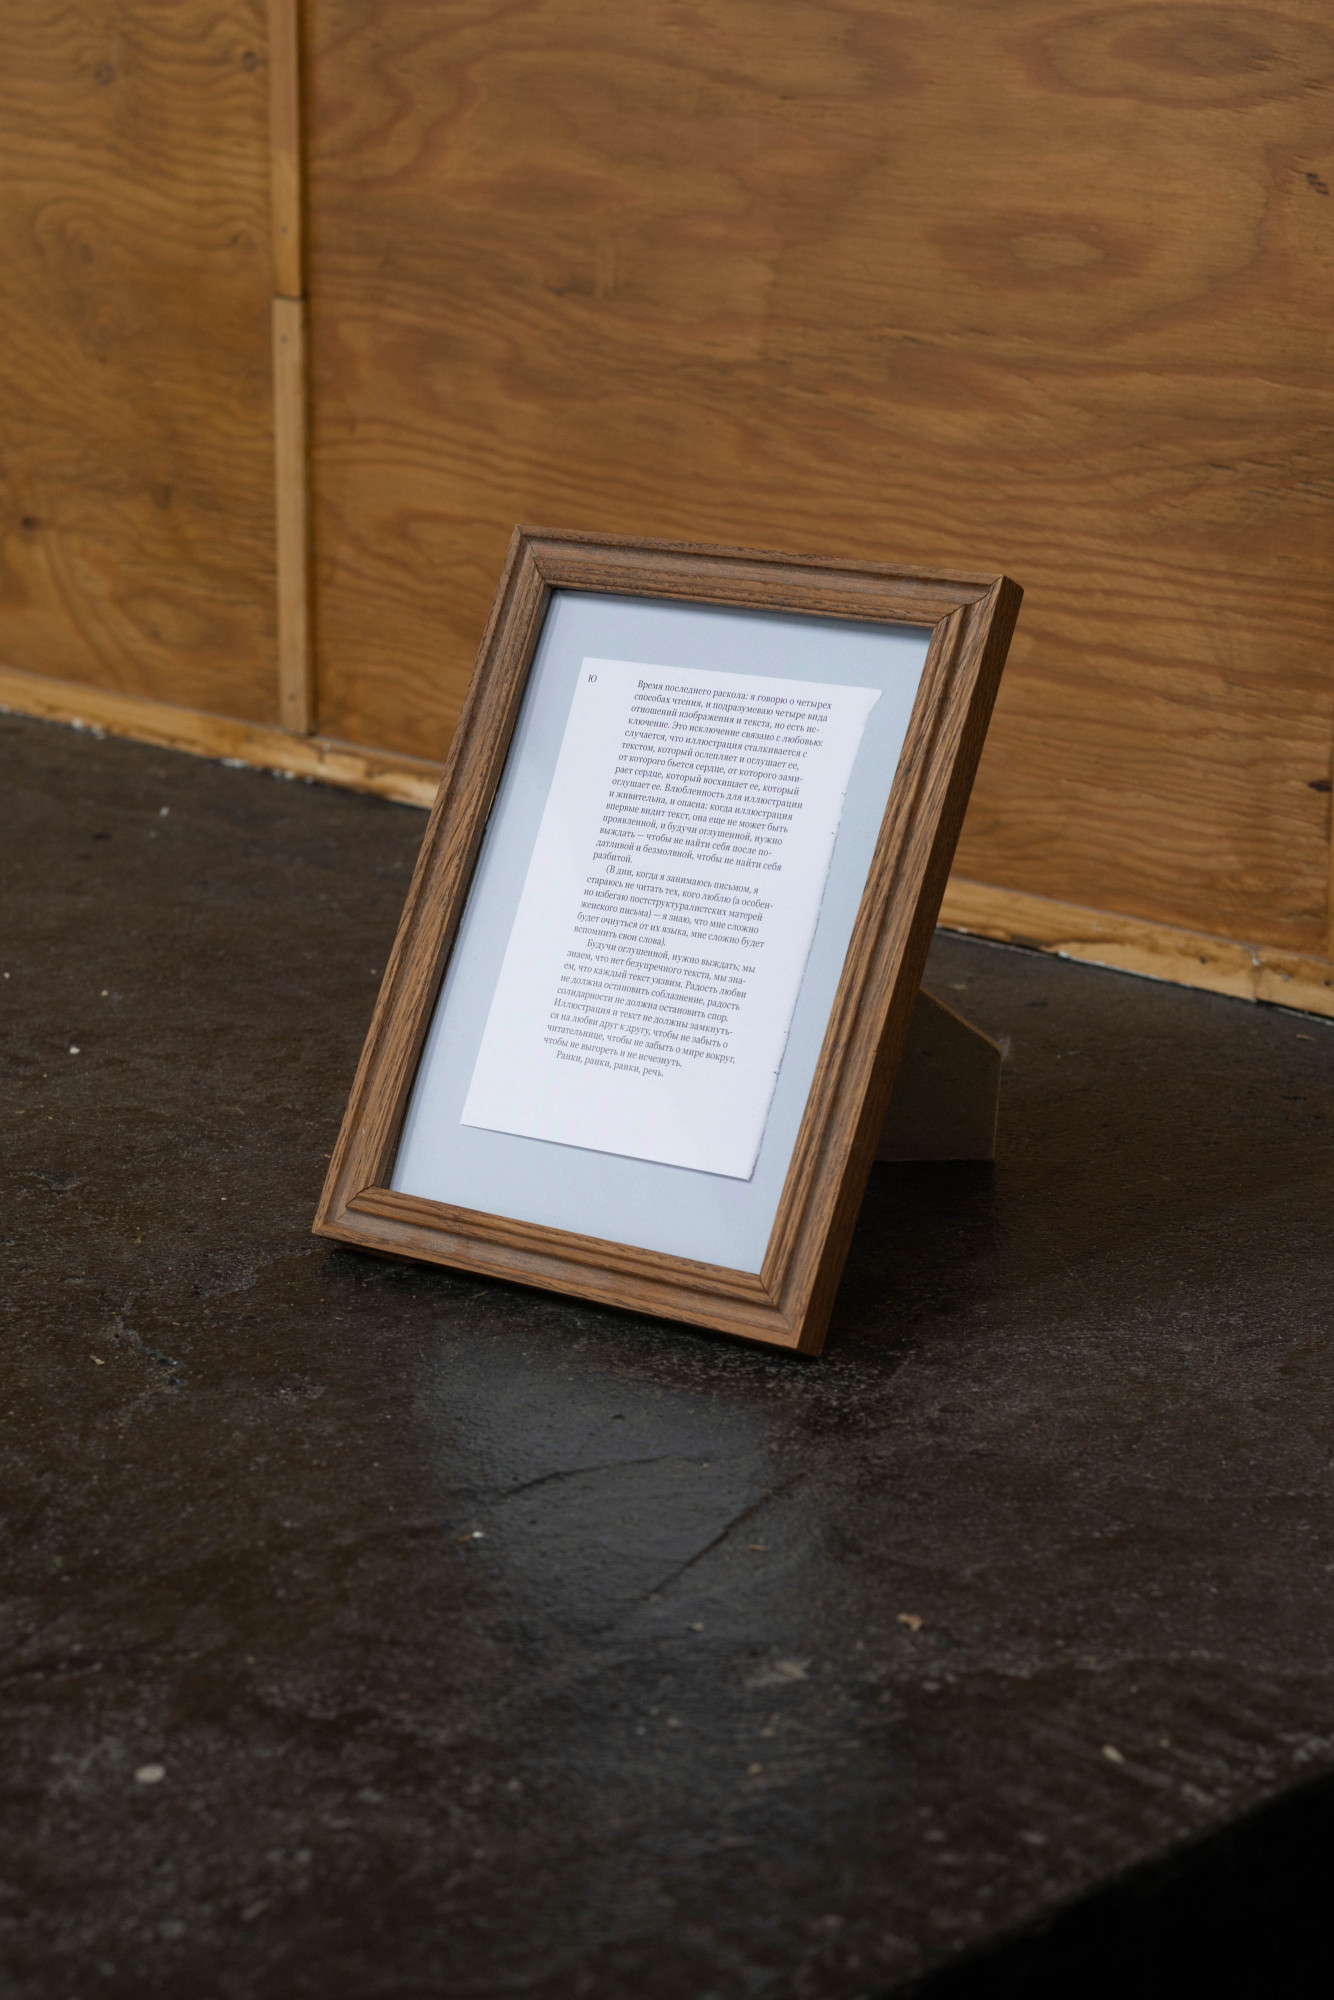 """""""Being in love brings both life and danger to the illustration."""" The Unshockheaded Doubles Boredom…, 2020. The framed text describes different ways in which writing and illustration can coexist"""